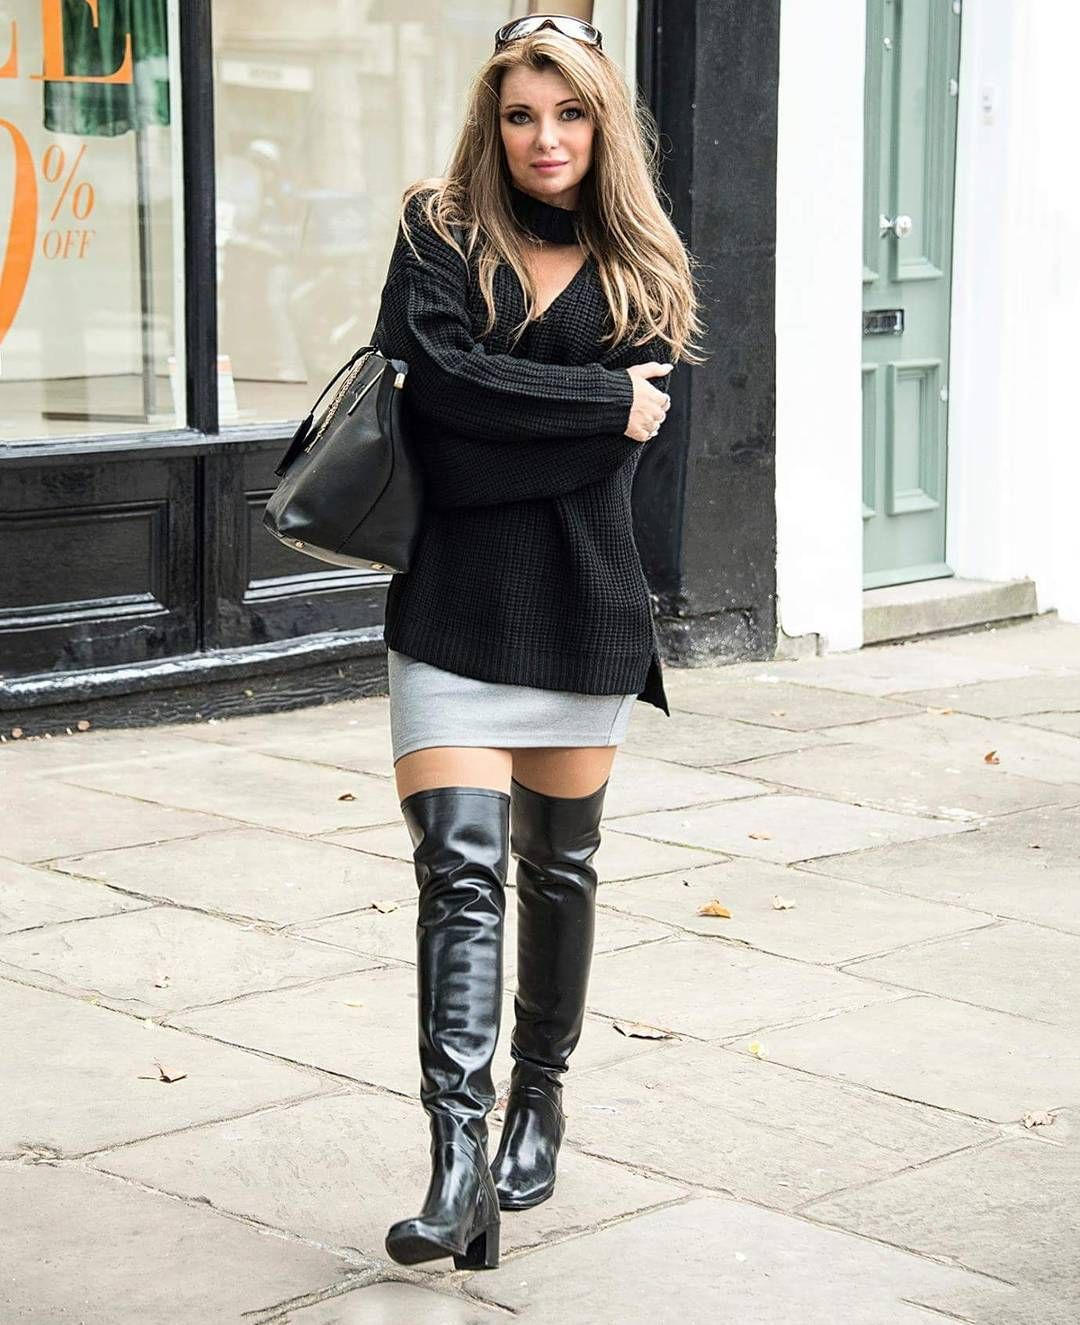 Blonde Wearing Skirt And Acquo Otk Boots Outfit  Thigh -9774